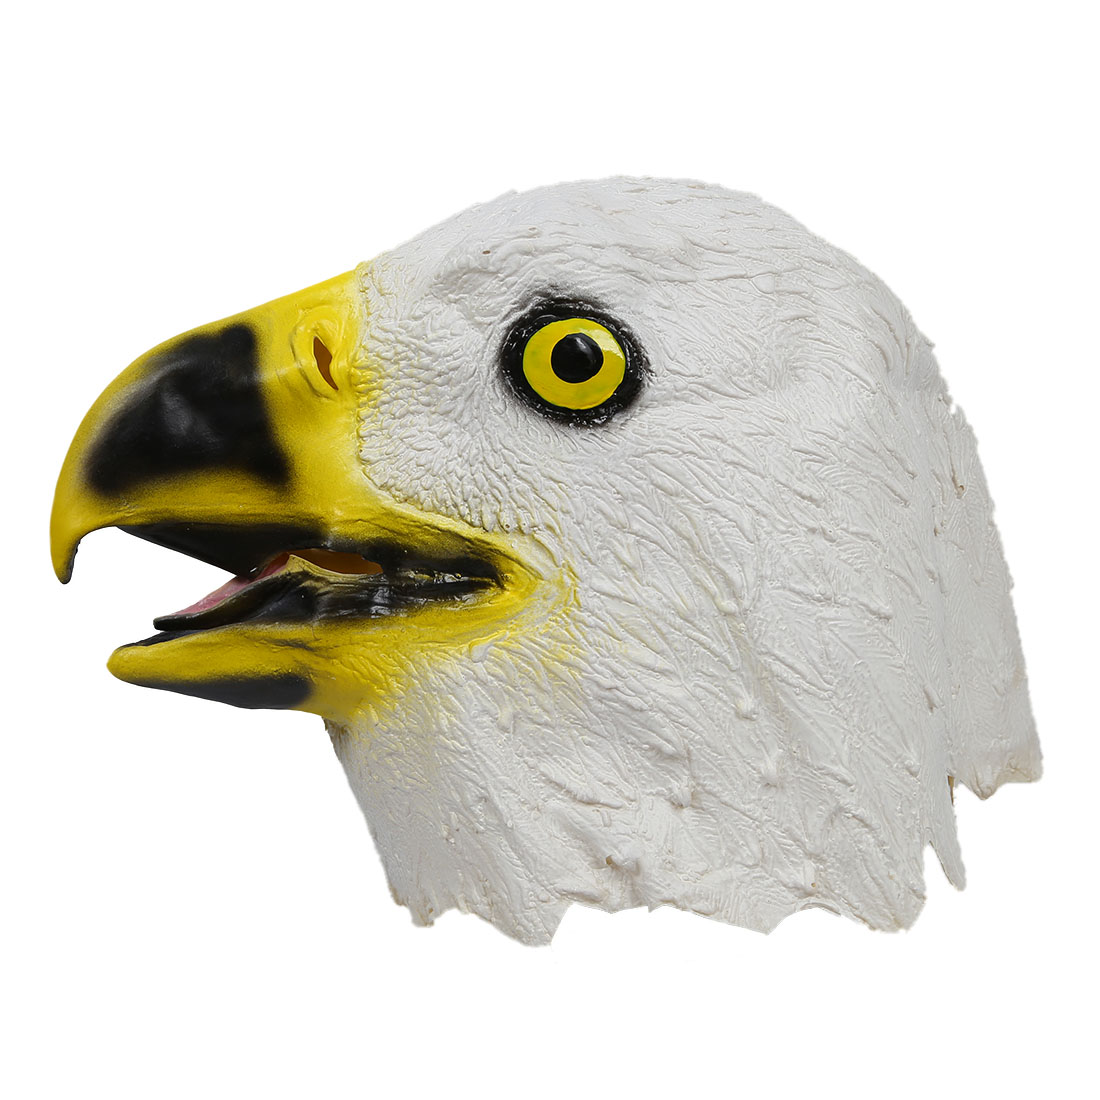 Eagle Party Decorations Popular Eagle Head Mask Buy Cheap Eagle Head Mask Lots From China